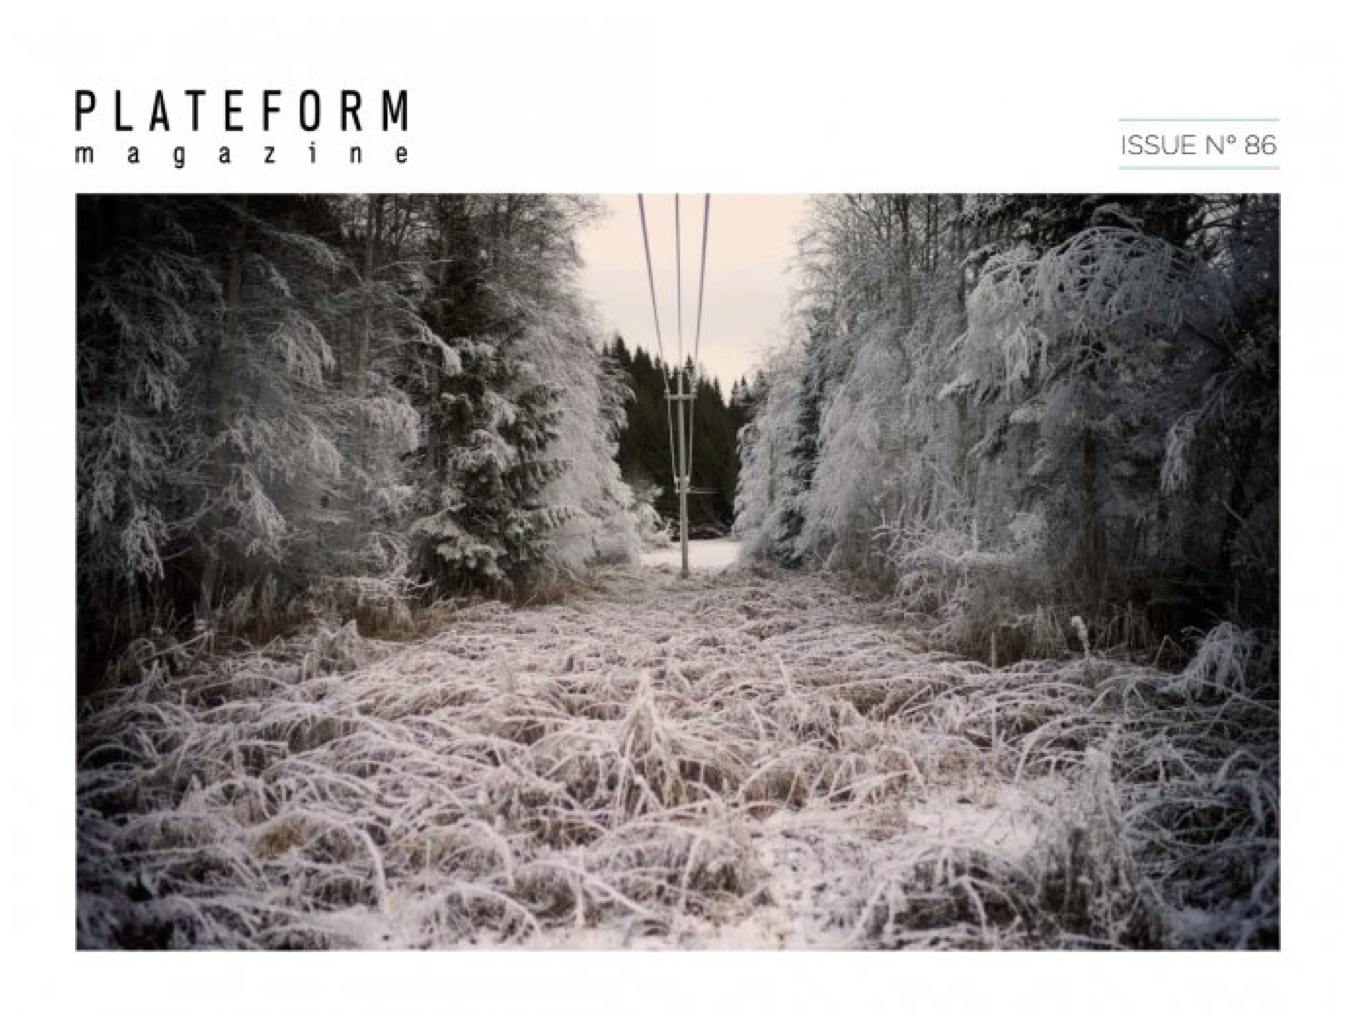 PLATEFORM Magazine ISSUE 86